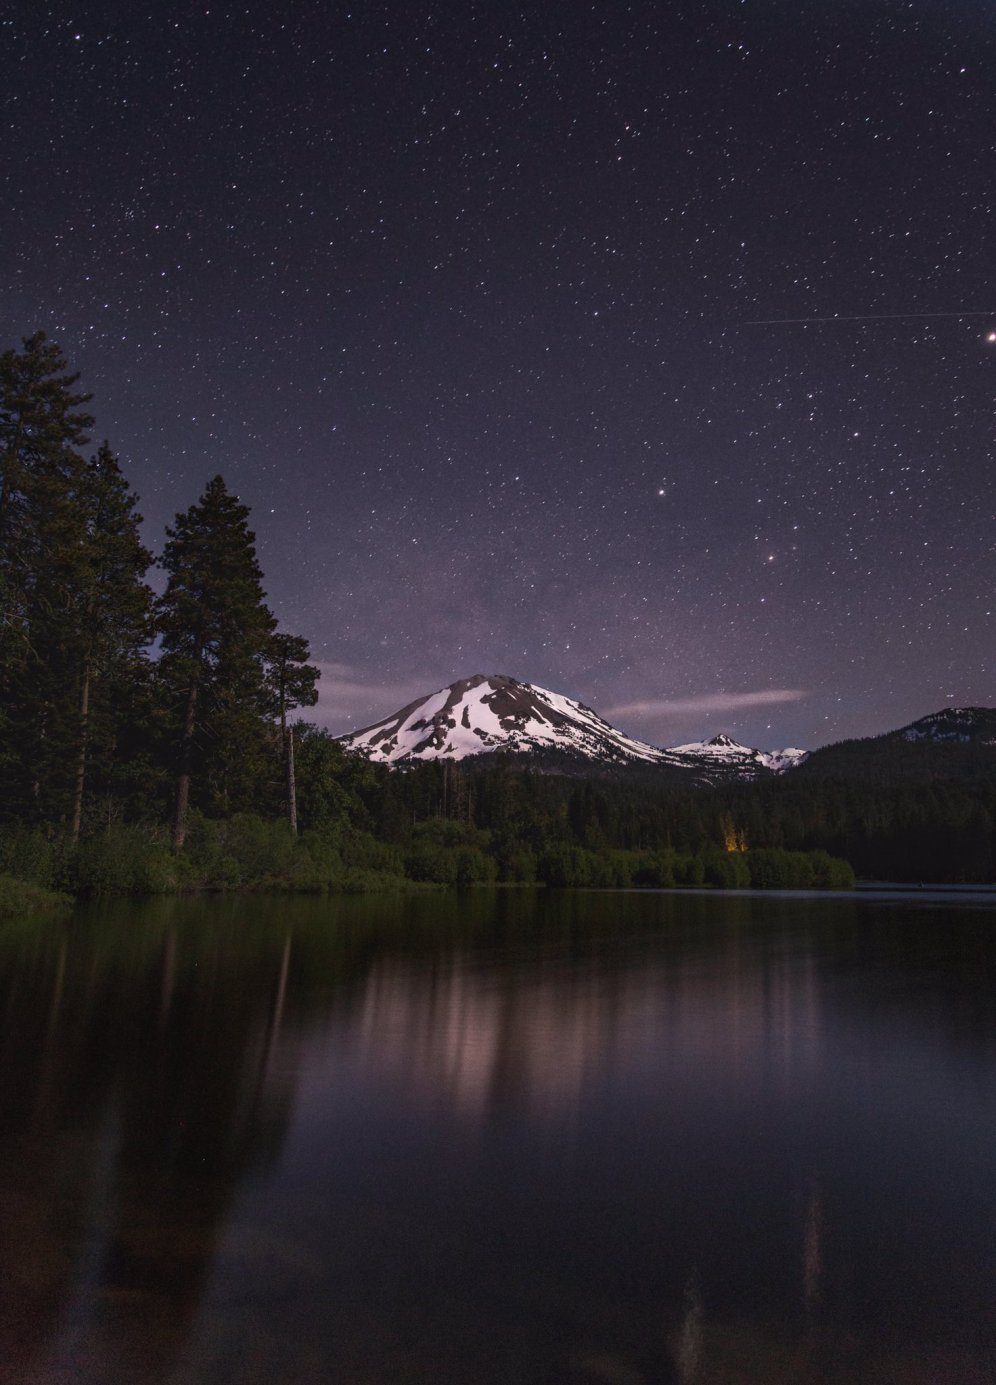 Dark night skies make for a stargazer's paradise at California's Lassen National Park. Photo by Sam Lee. Tweeted by the US Department of the Interior, 7/6/16.